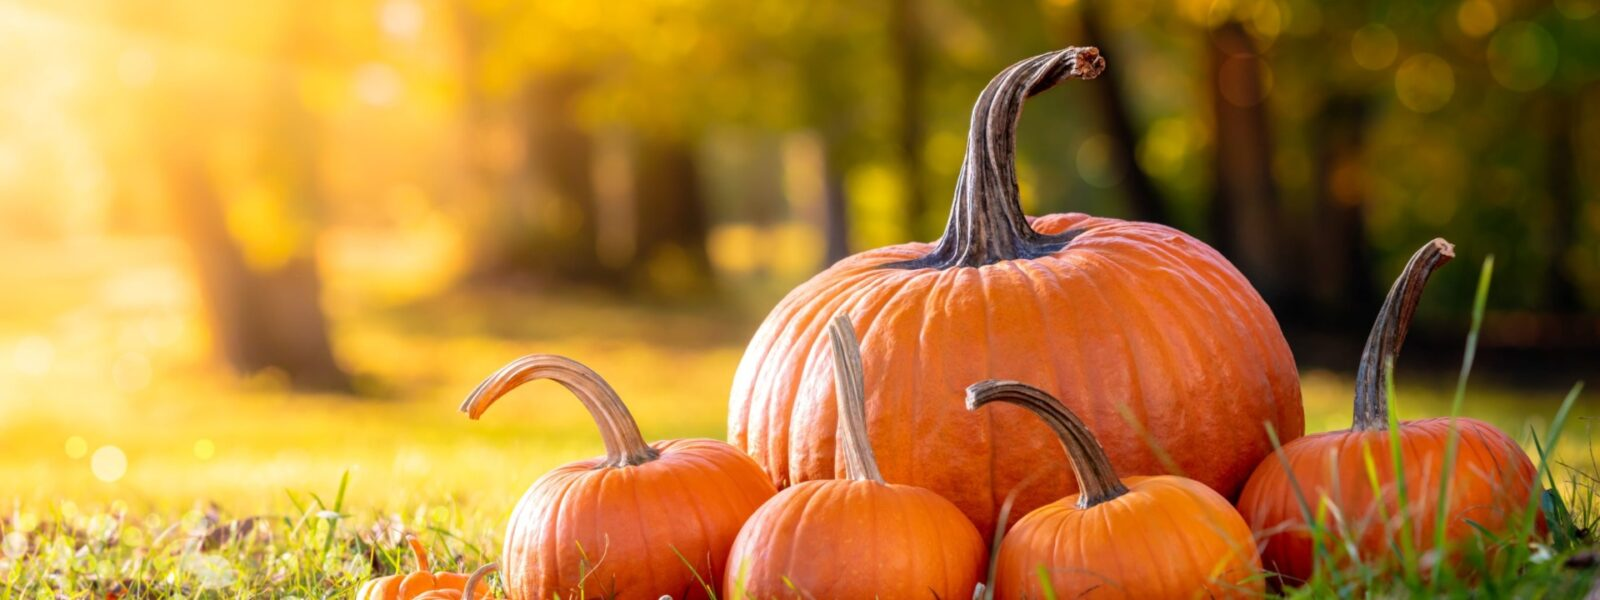 Advanced Wellness Announces Fall Foods to Incorporate